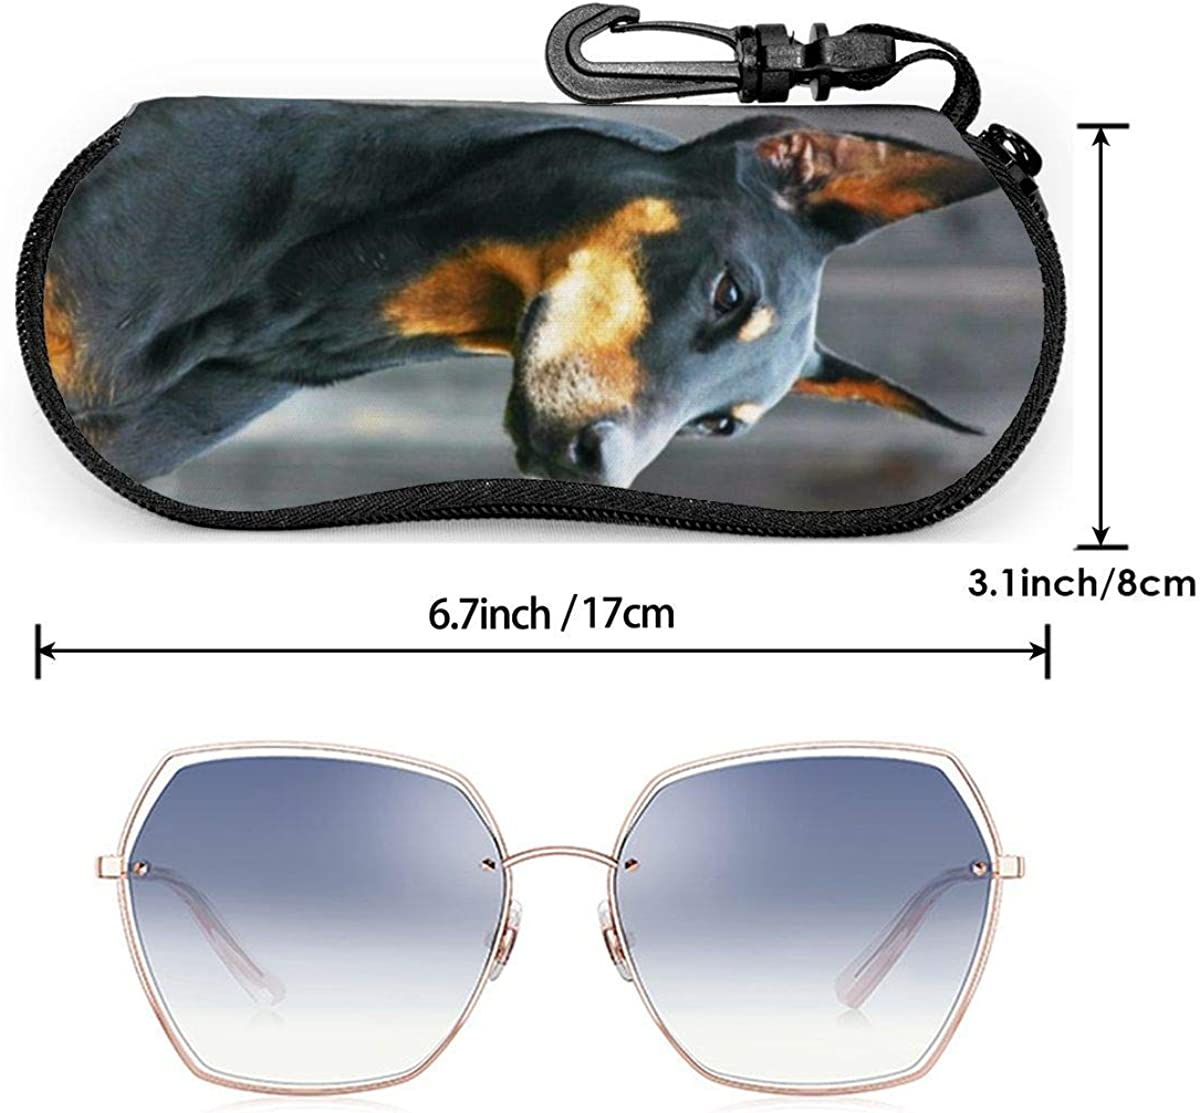 IUBBKI Doberman Eyeglass Case For Women And Men,Portable Sunglasses Soft Case With Carabiner